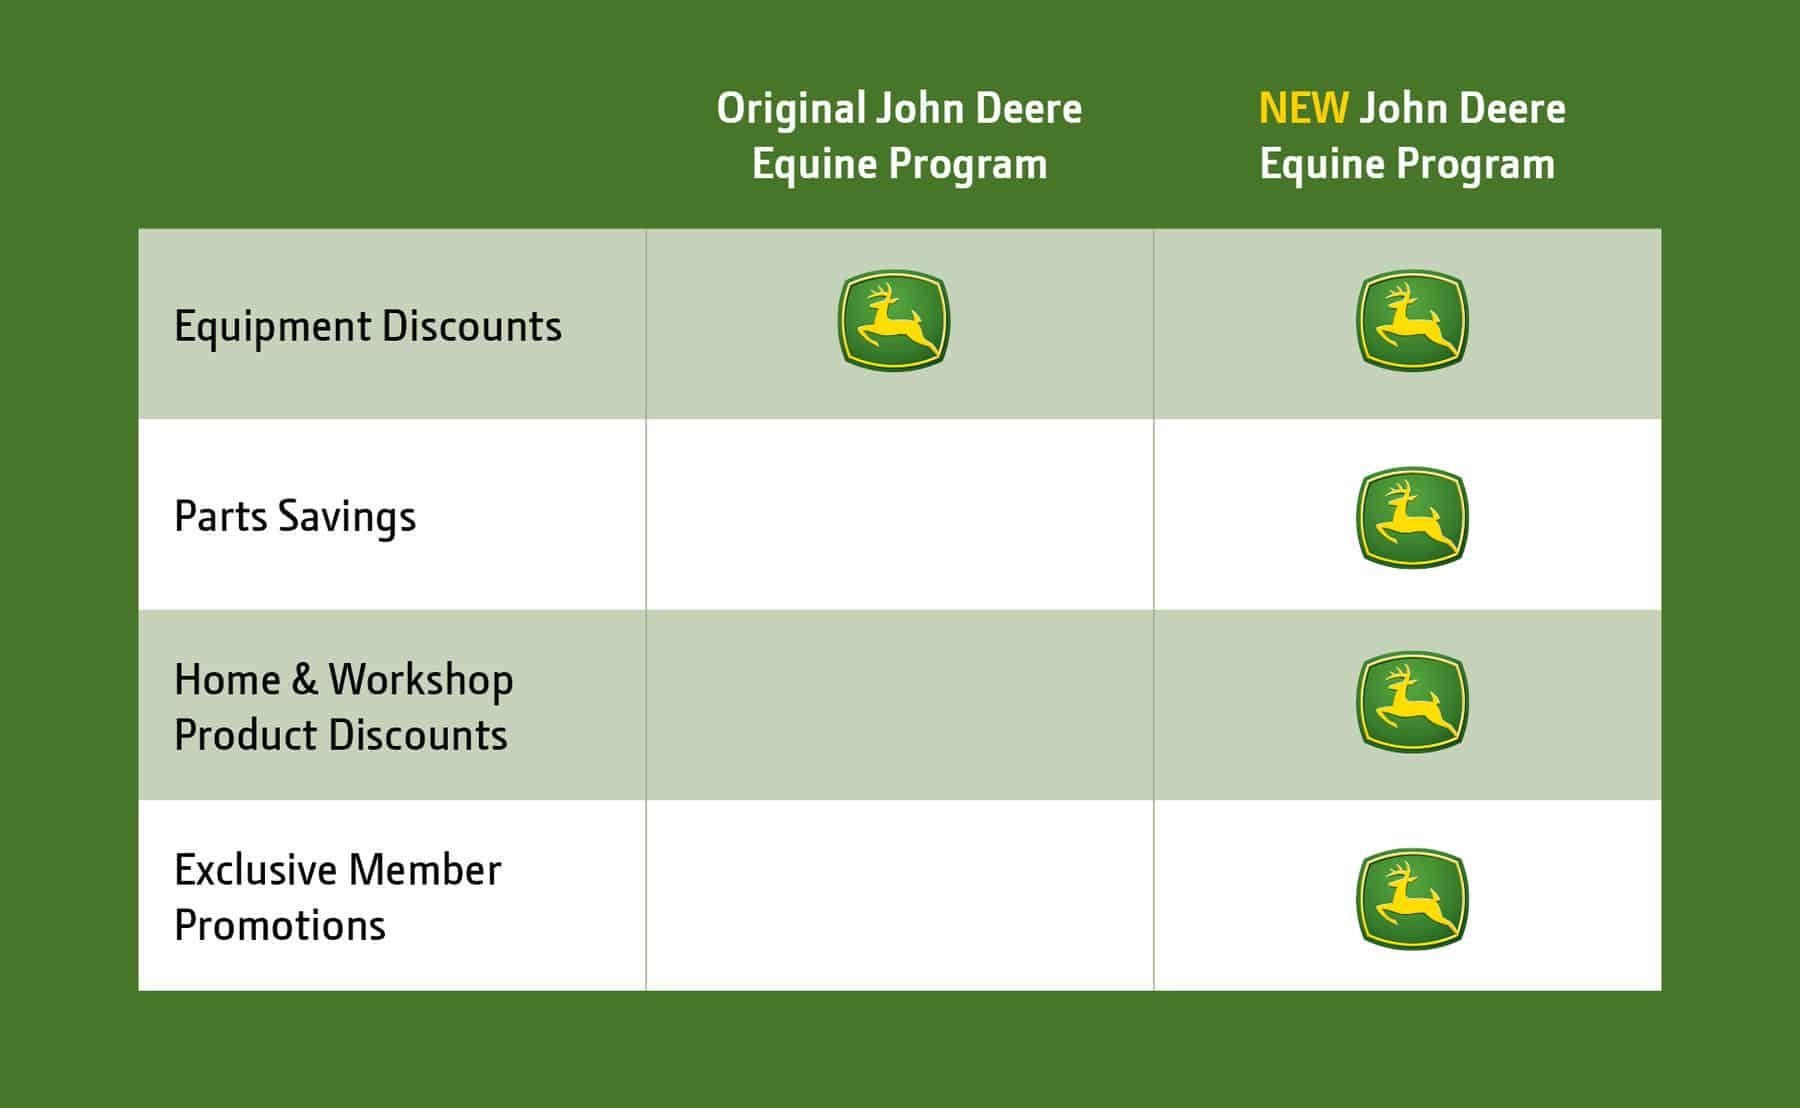 Loyalty Rewards Program >> Ntra John Deere Announce Enhanced Partnership Including Access To